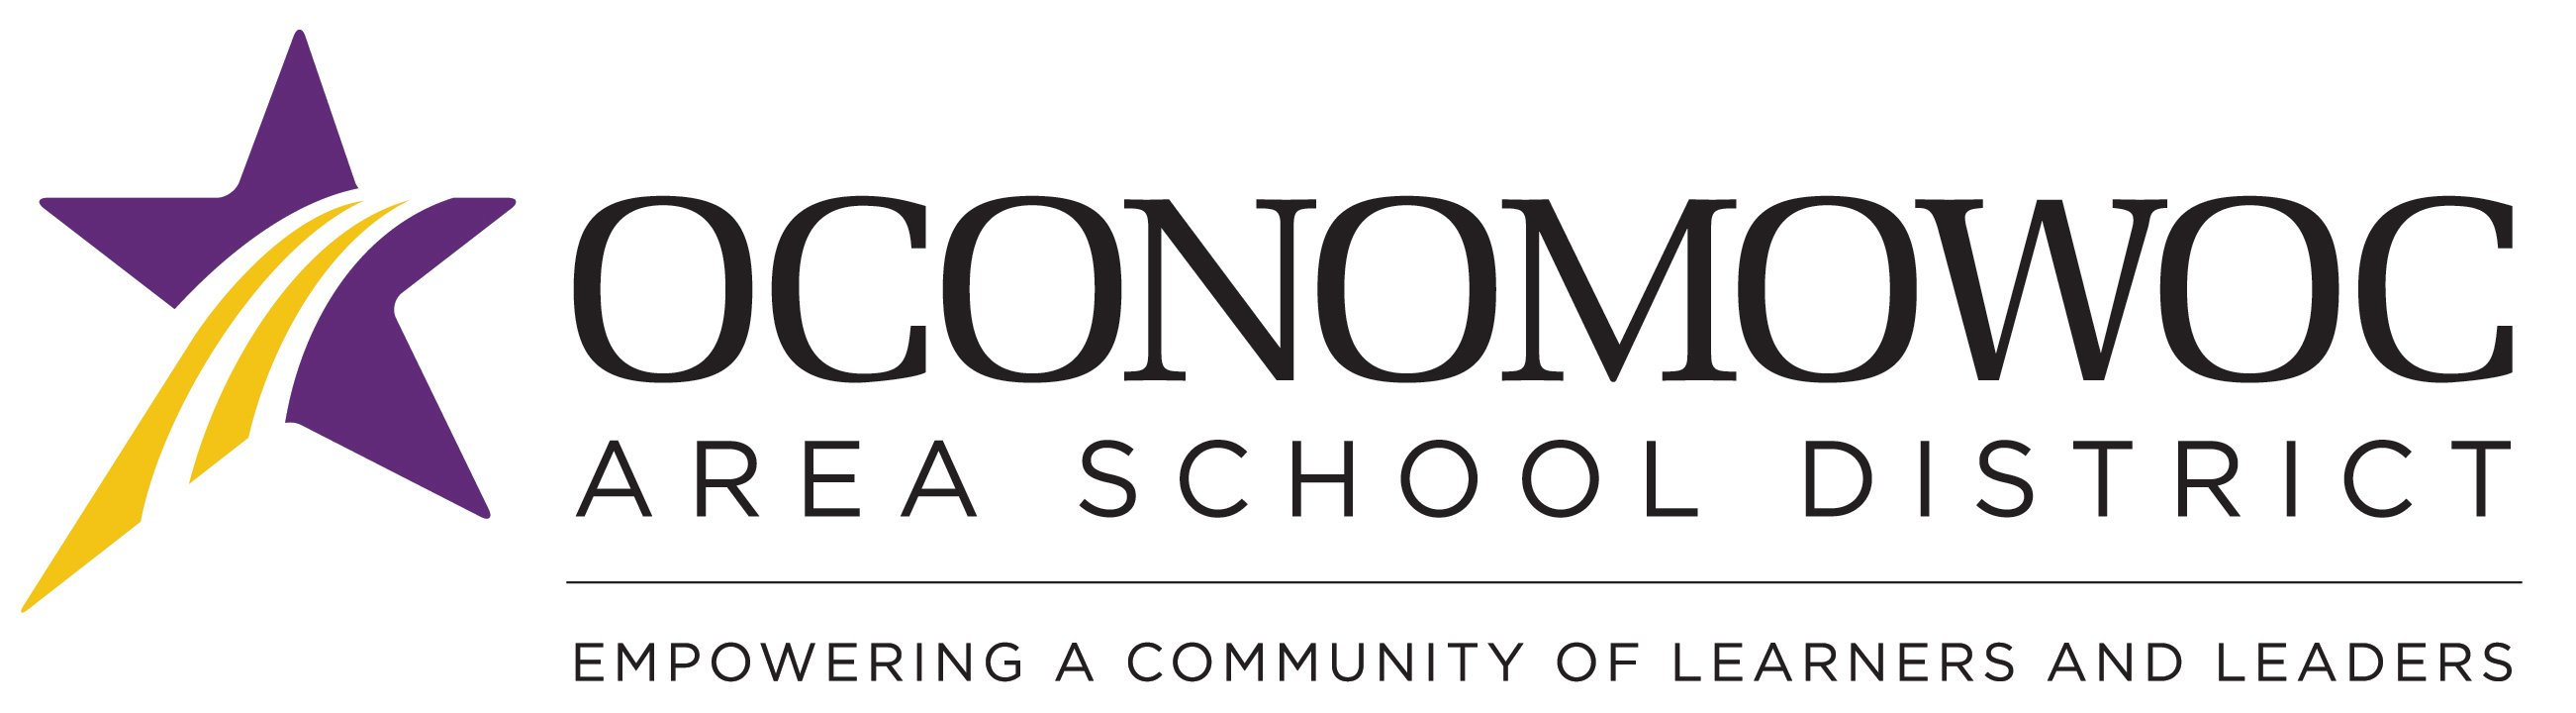 Oconomowoc Area School District Greenland Elementary 2603x720